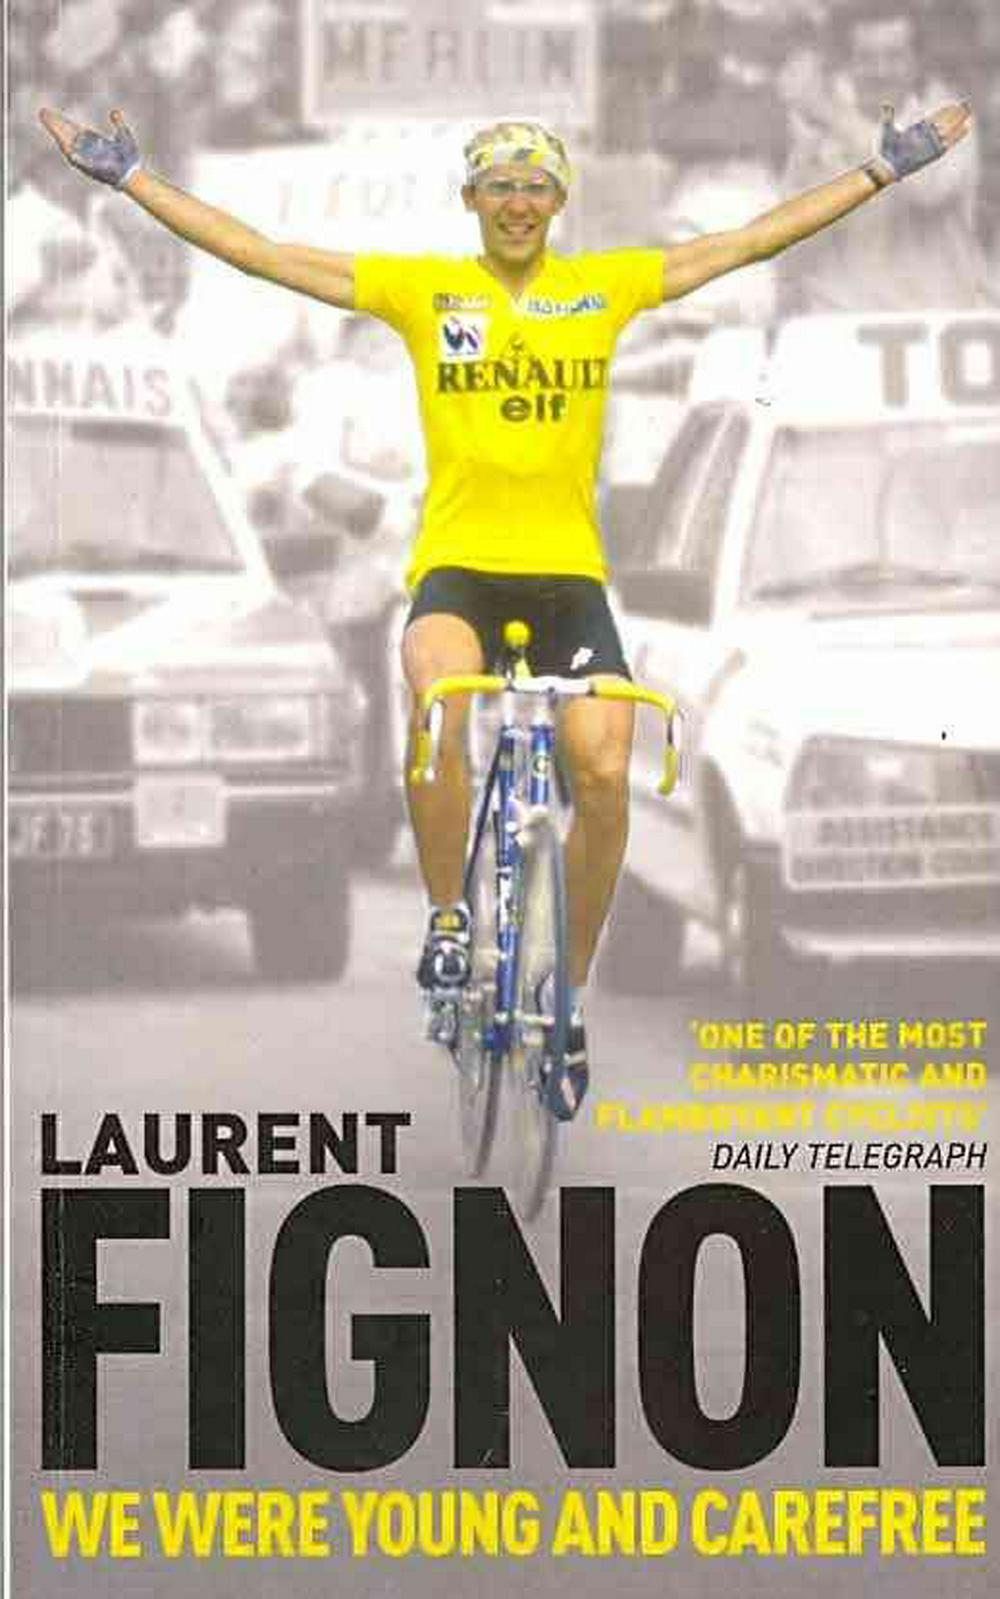 We Were Young and Carefree: The Autobiography of Laurent Fignon by Laurent Fignon, ISBN: 9780224083195